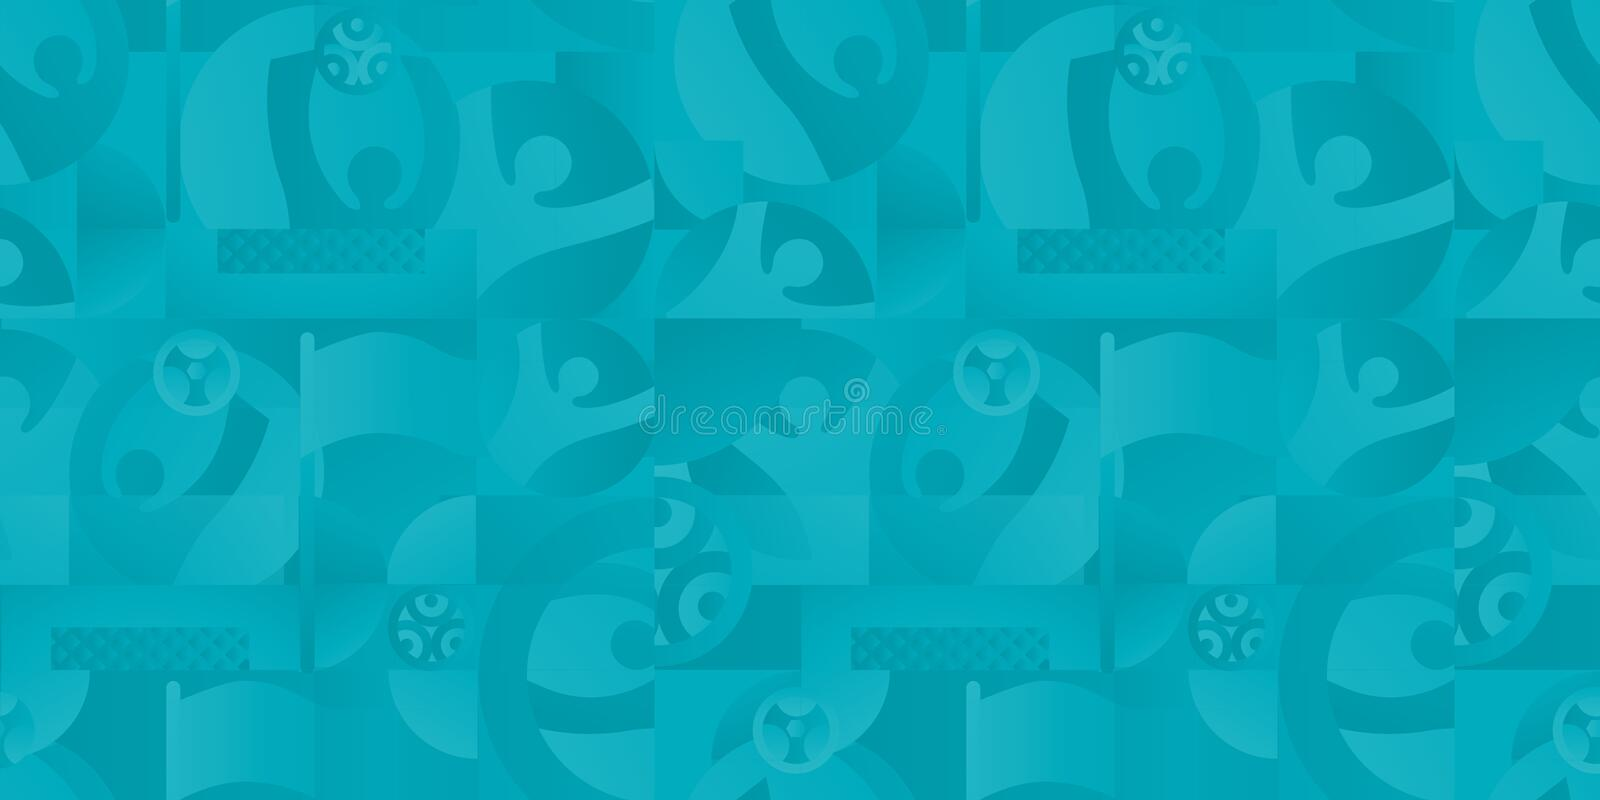 EURO 2020 UEFA European Championship Soccer Abstract football sports dynamic seamless background. Soccer European Championship. EURO 2020 Abstract Turquoise stock illustration